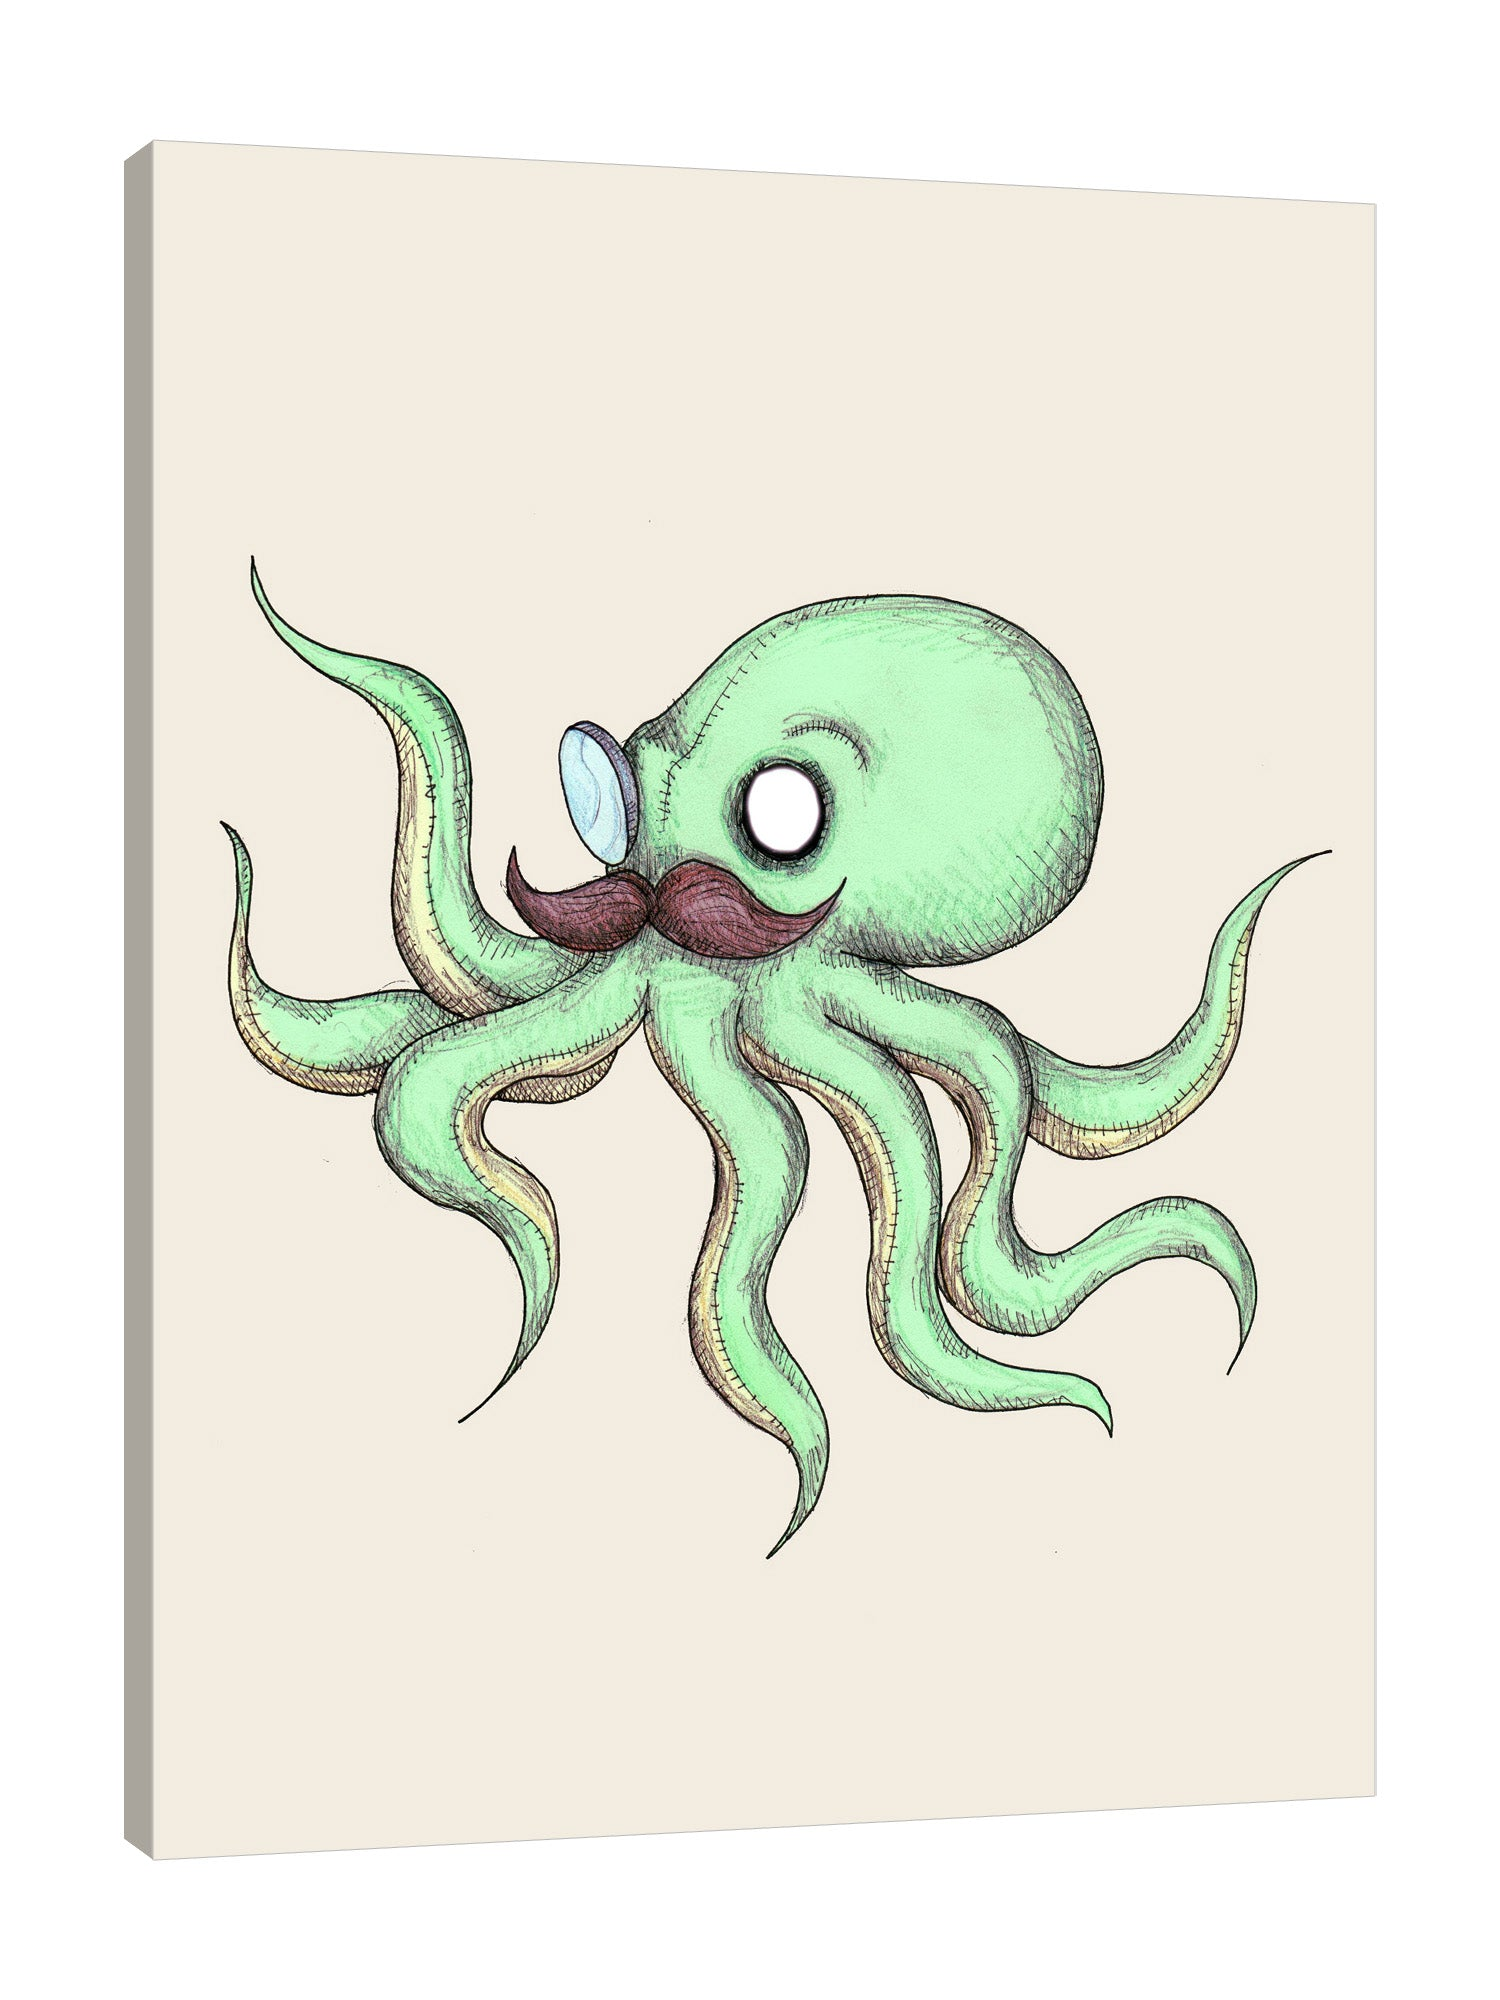 Ludwig-Van-Bacon,Vertical,3X4,Coastal,Modern & Contemporary,Animals,Nautical & Beach,coastal,octopus,octopuses,mustaches,mustache,green,animals,animal,Coral Pink,Gray,Mist Gray,Yellow